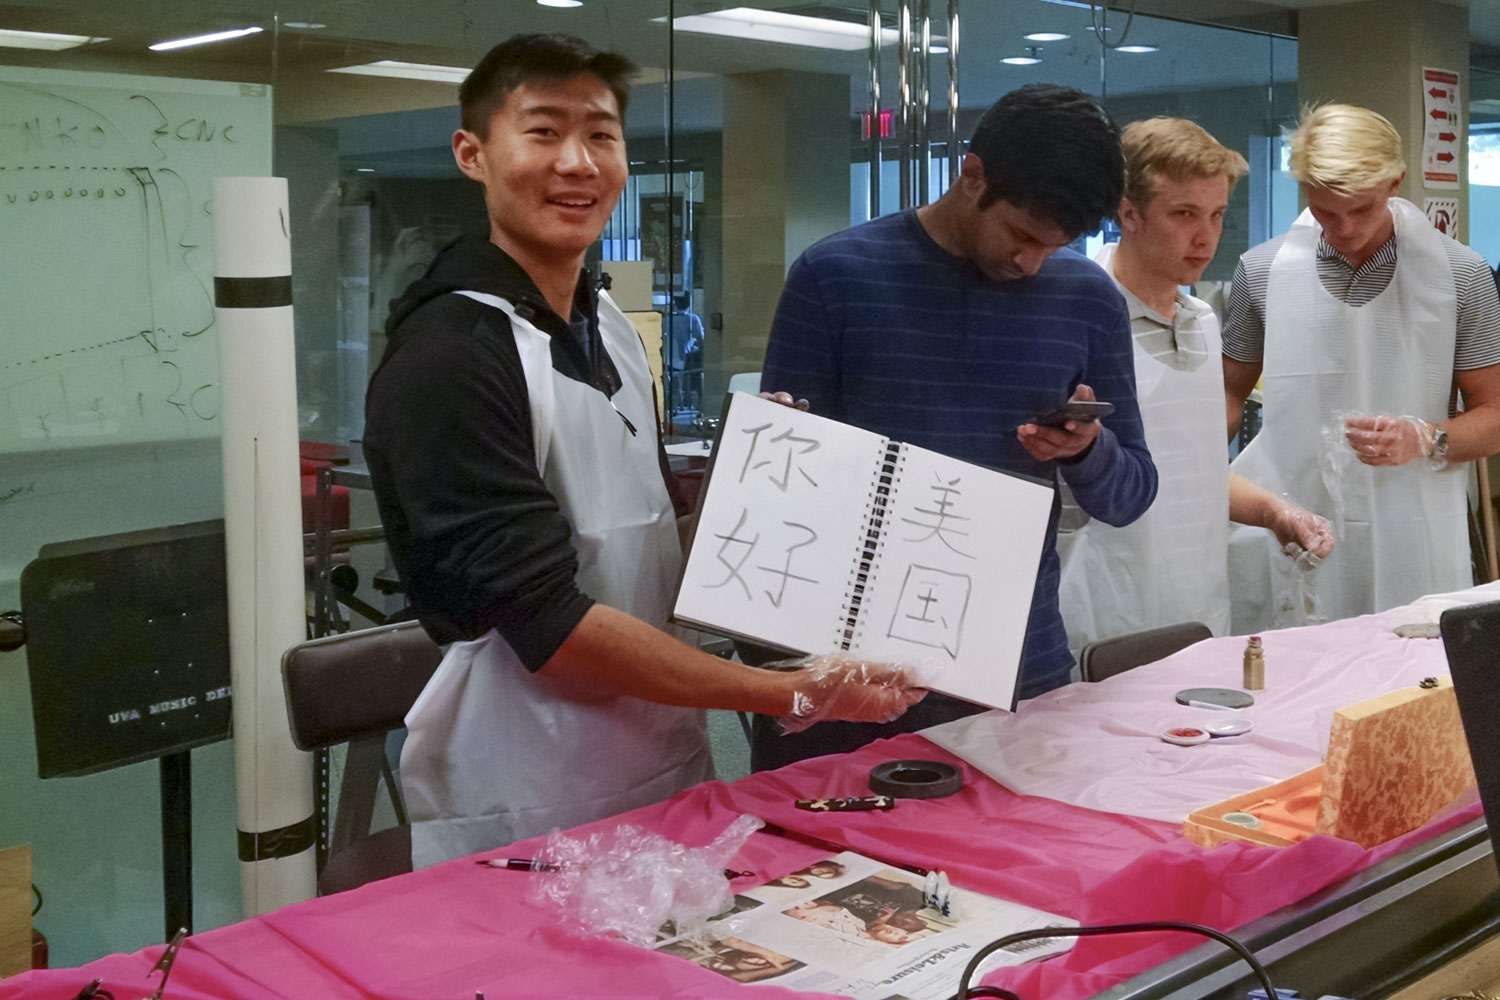 Richard Song demonstrates Chinese calligraphy, which he learned from his grandparents.